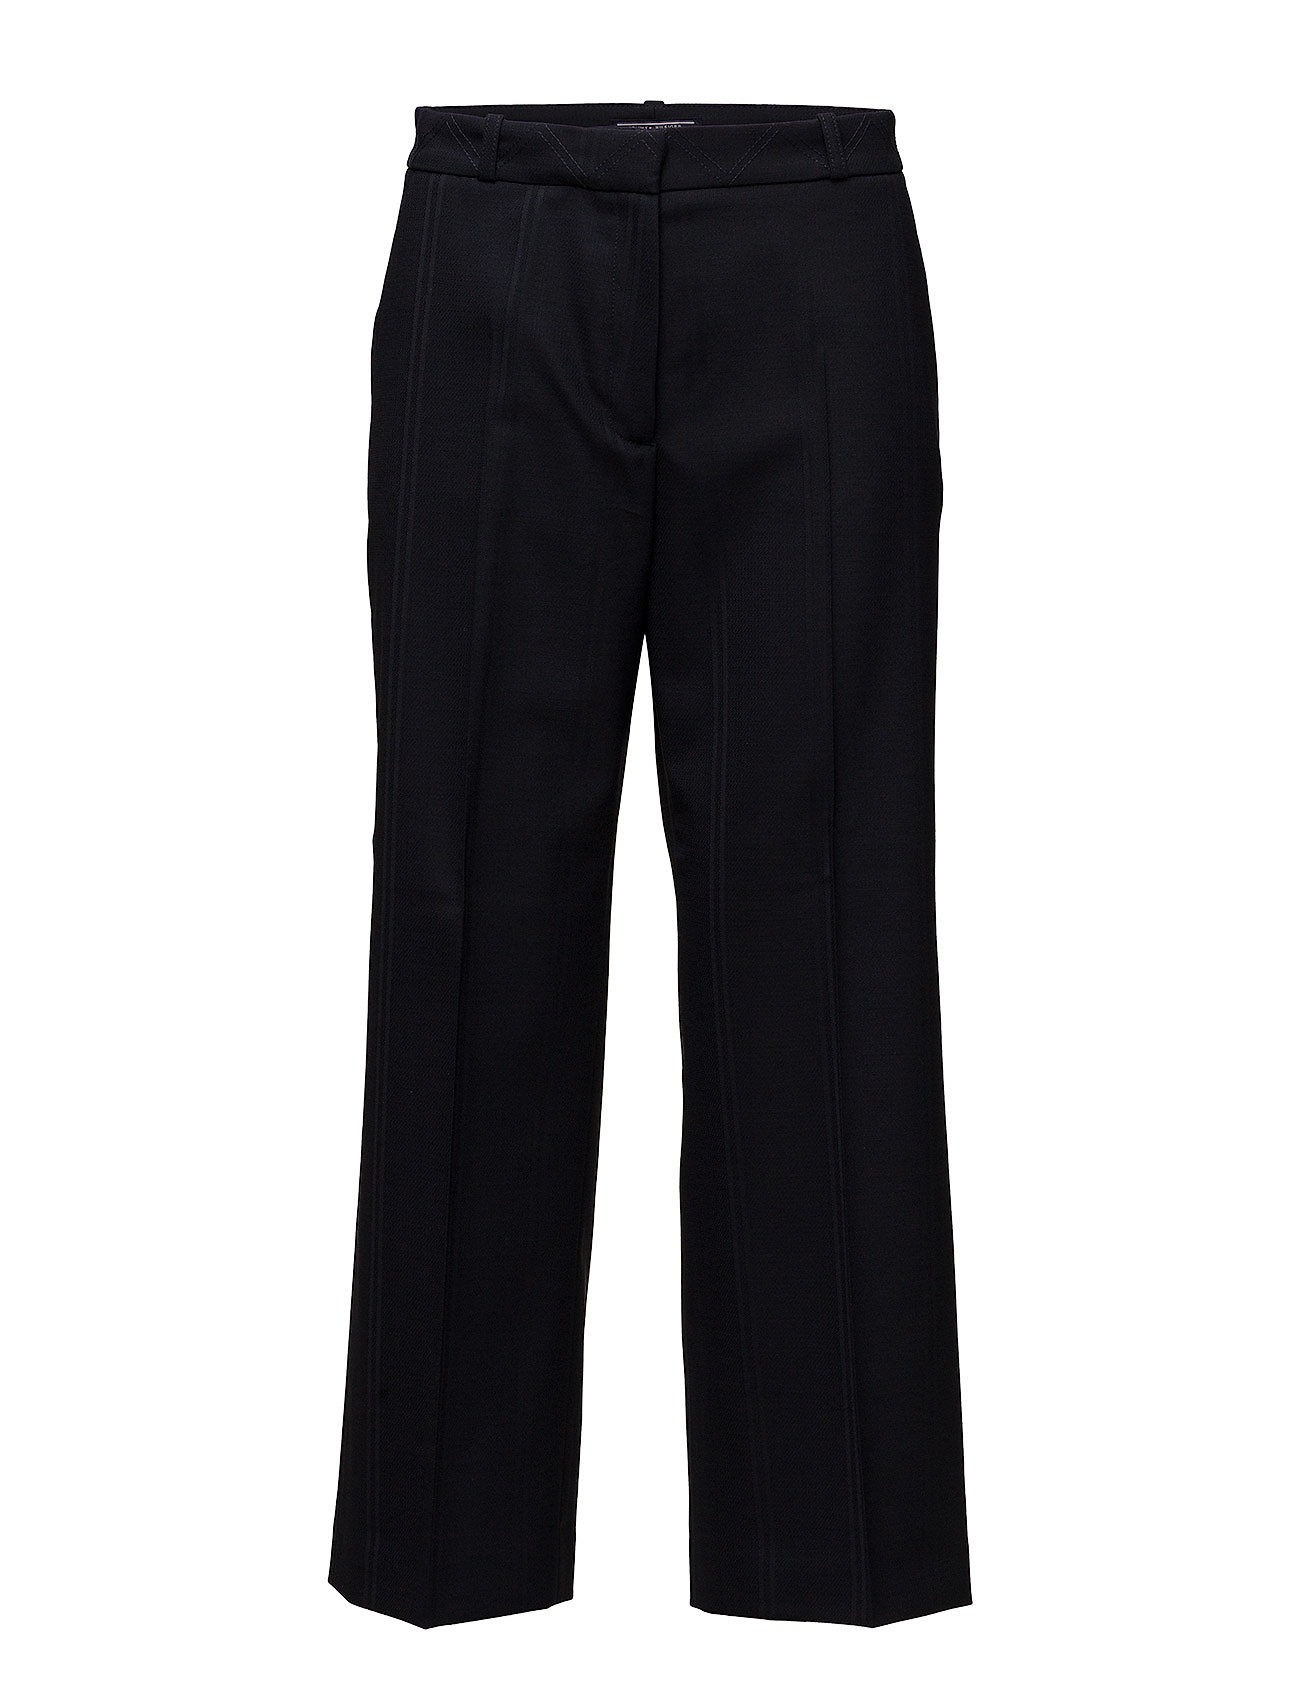 Kaia Cropped Pant - Tommy Hilfiger